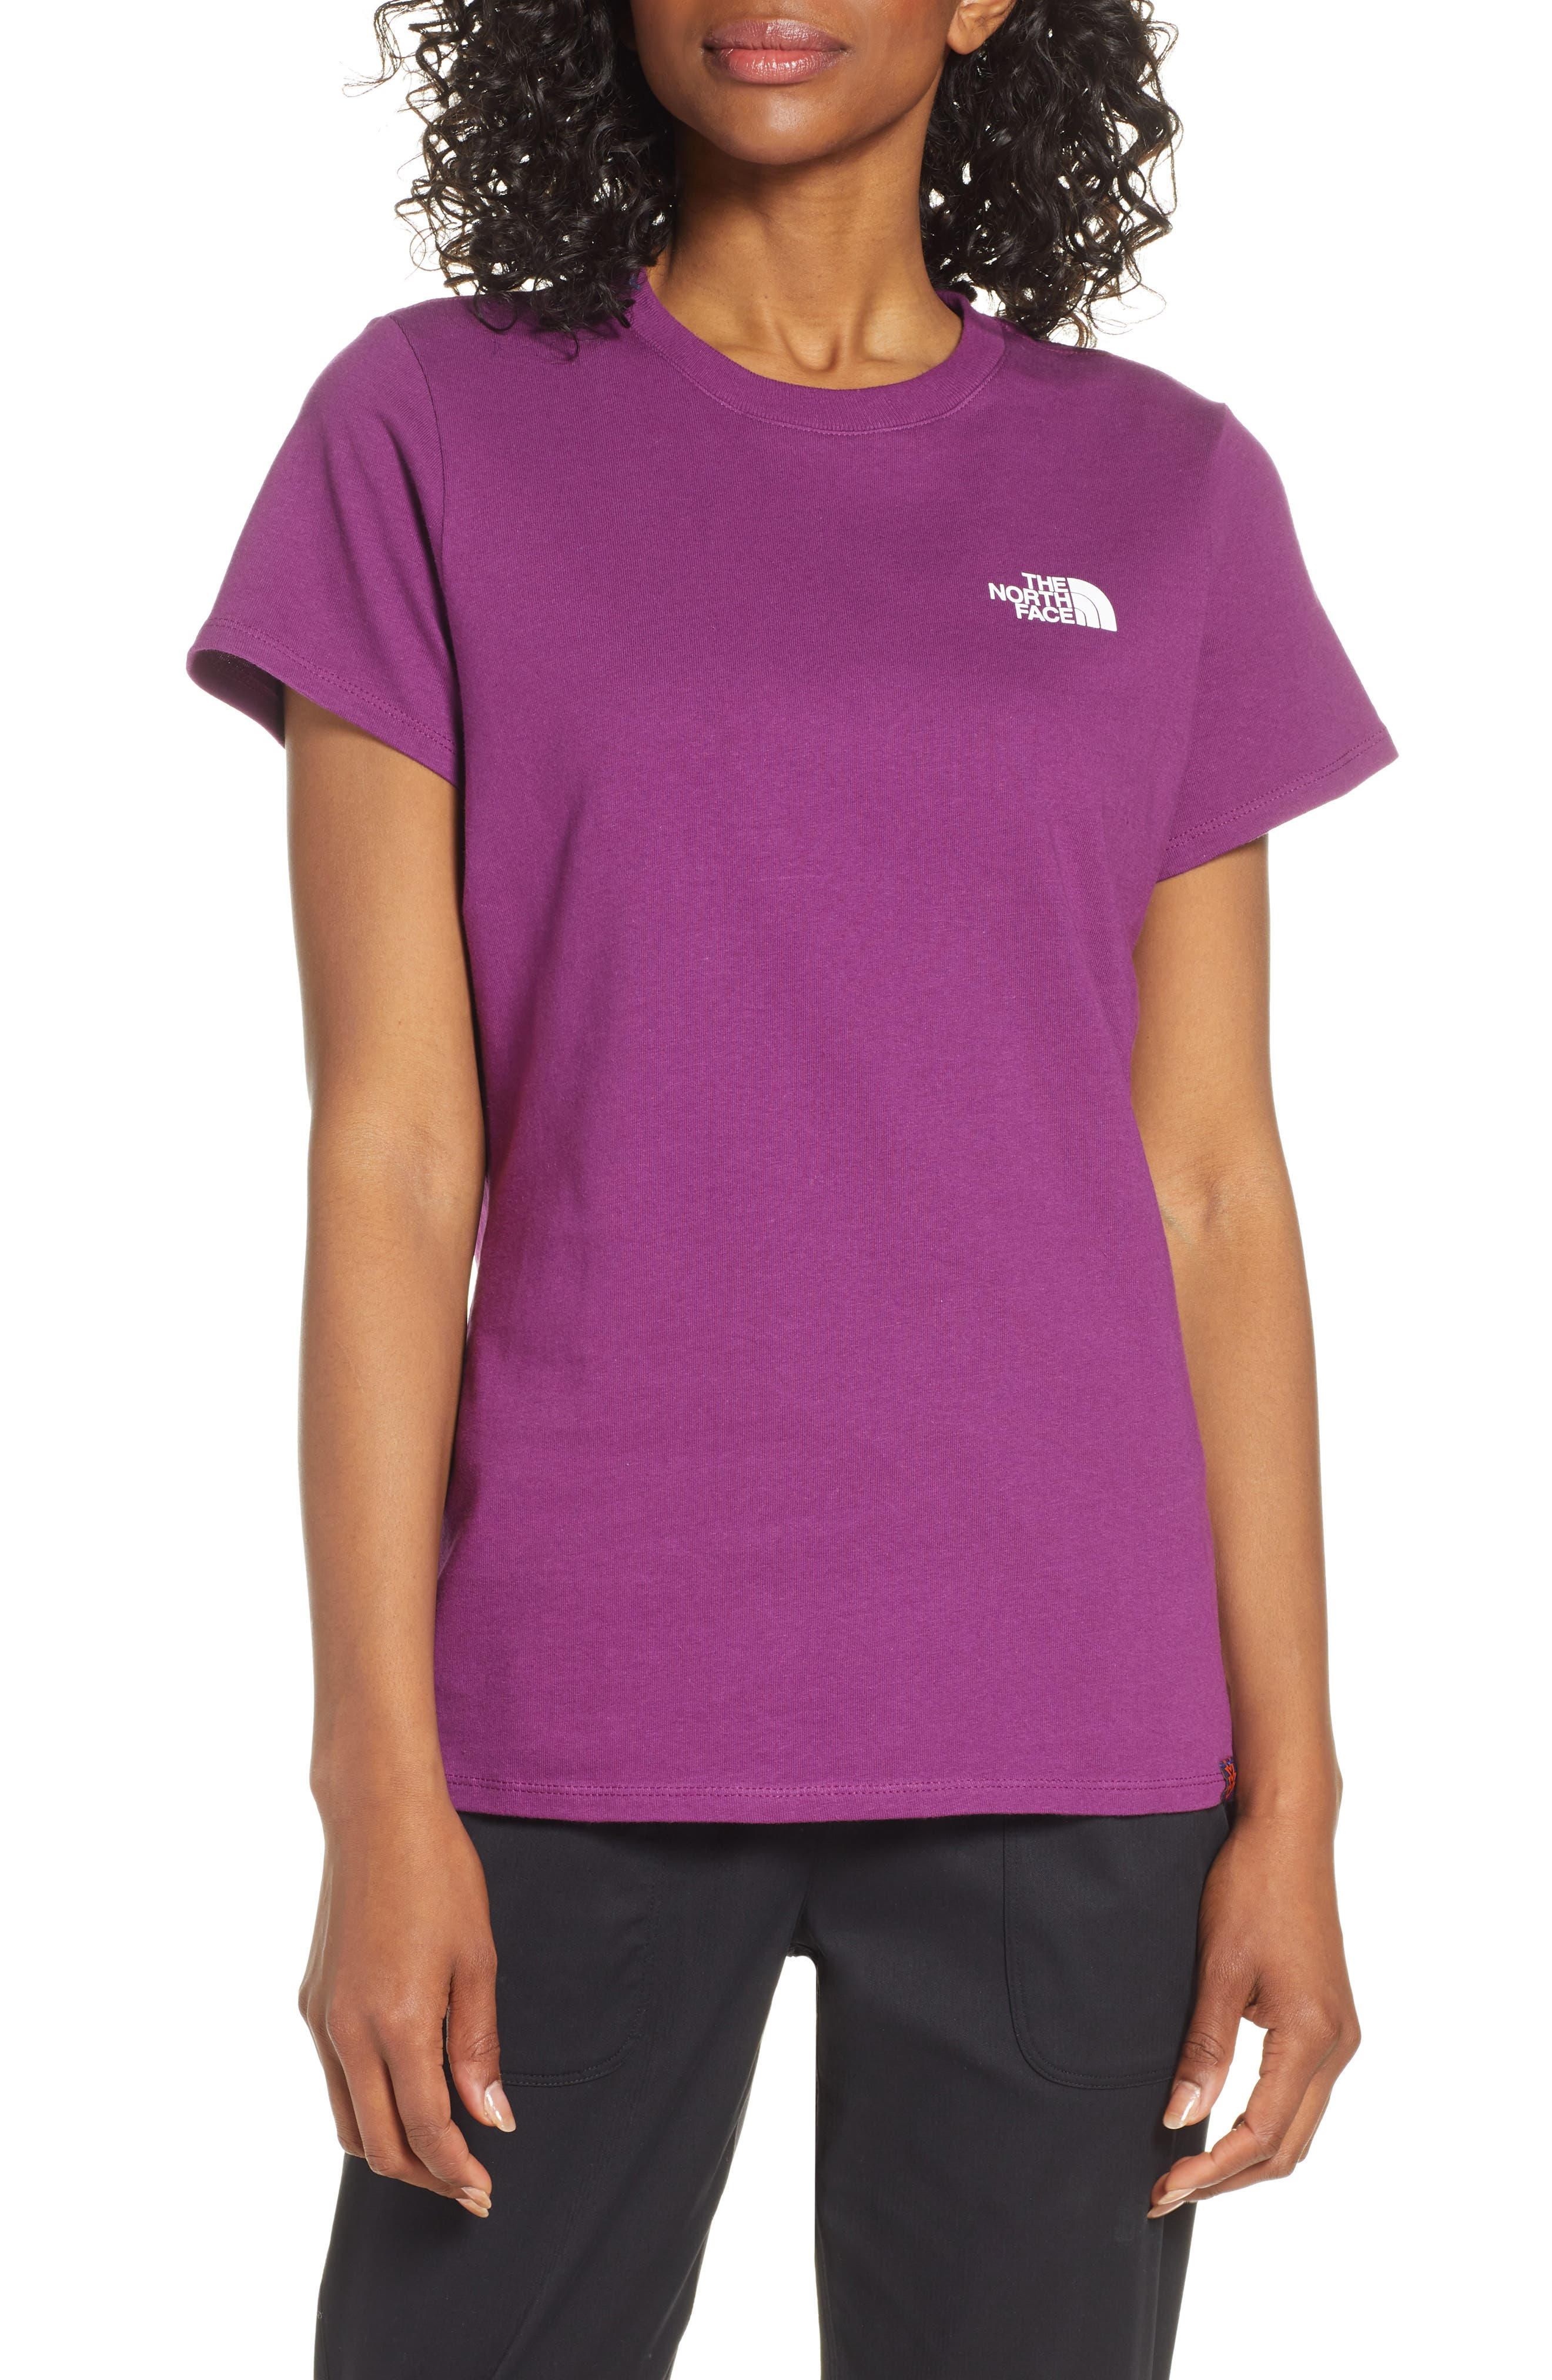 THE NORTH FACE Red Box Tee, Main, color, Phlox Purple/Aztec Blue